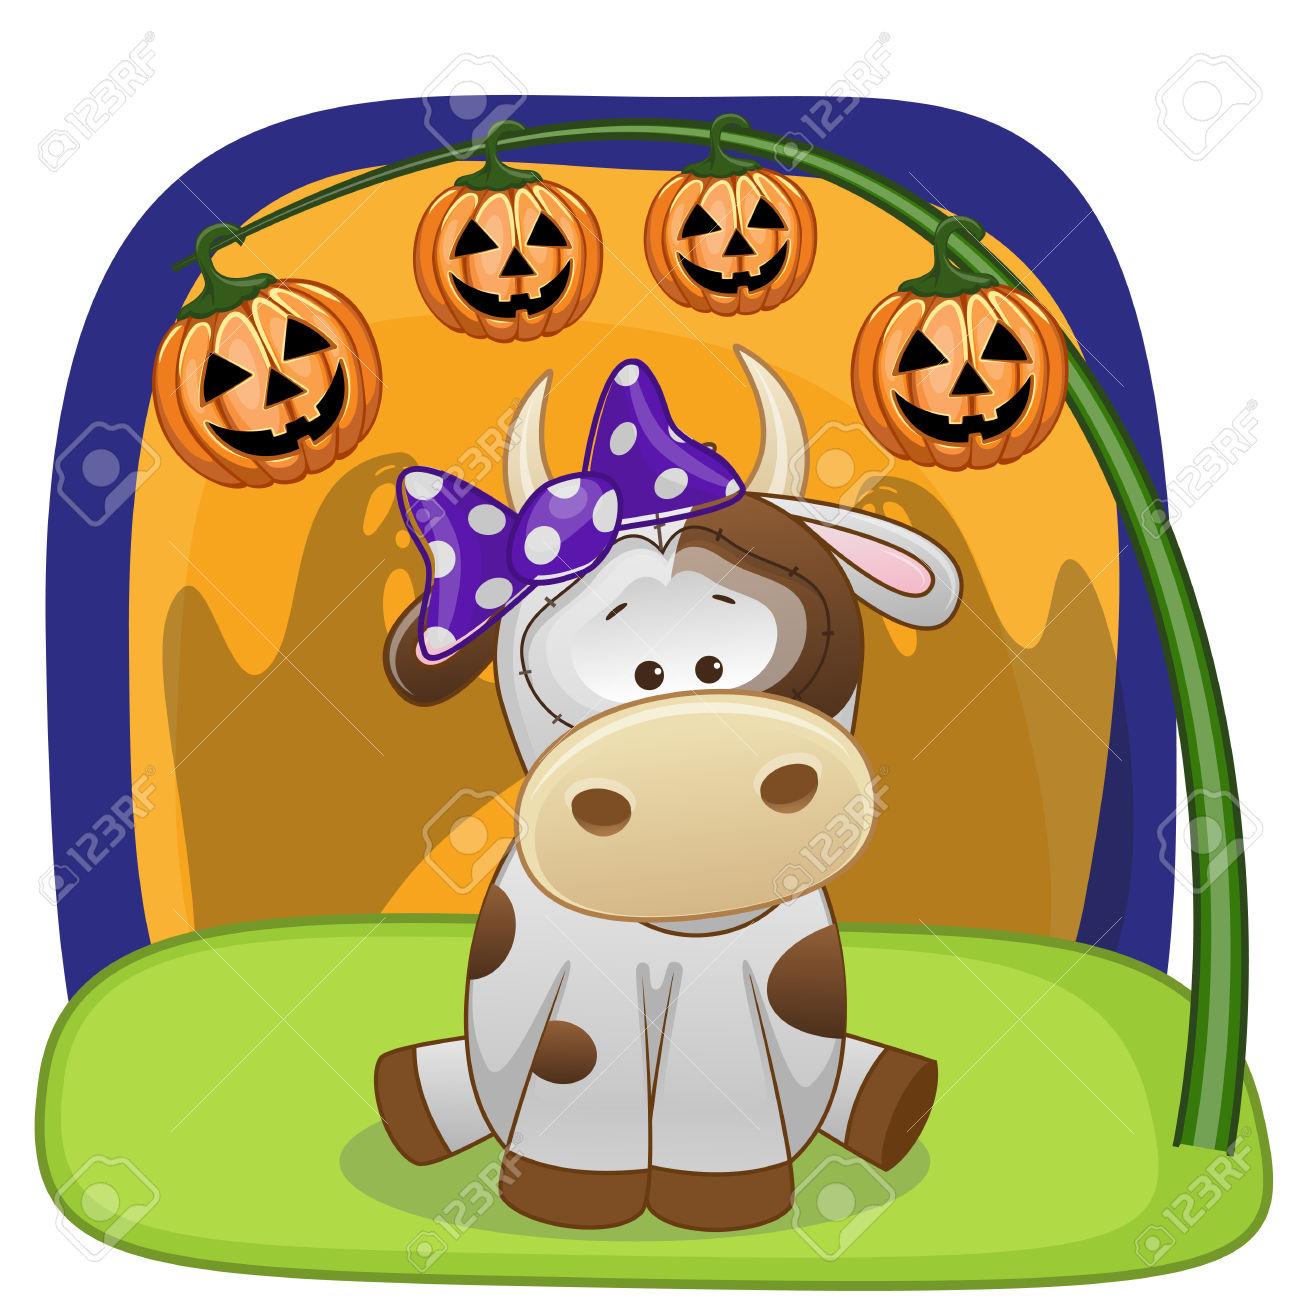 Halloween Illustration Of Cartoon Cow With Pumpkin Royalty Free.